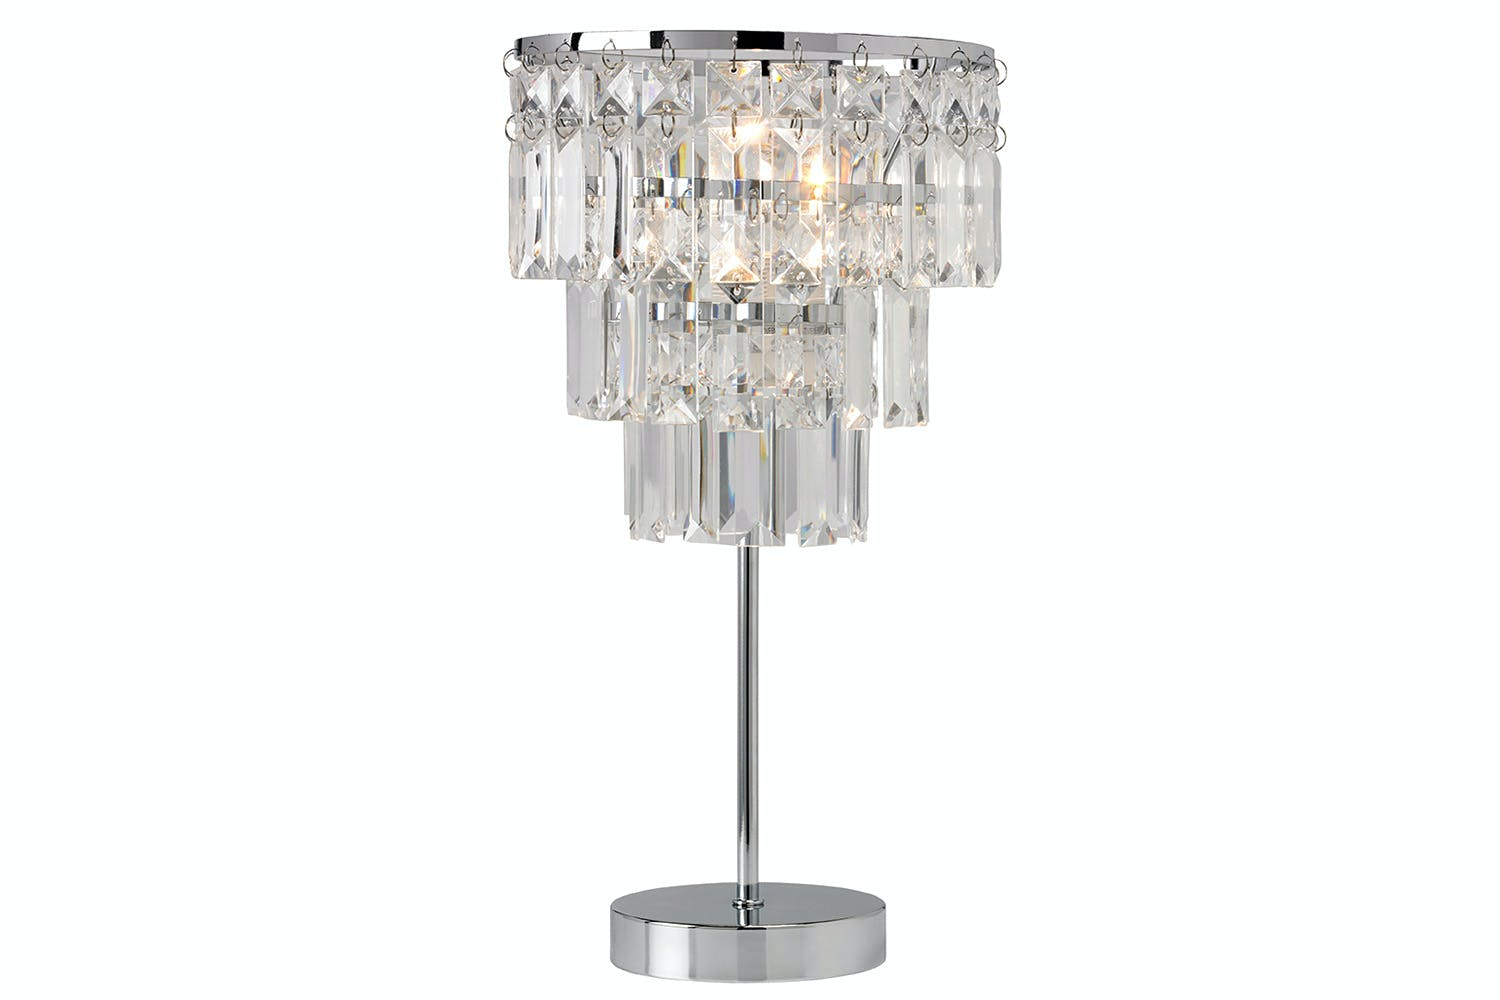 Victoria Table Lamp Harvey Norman Ireland